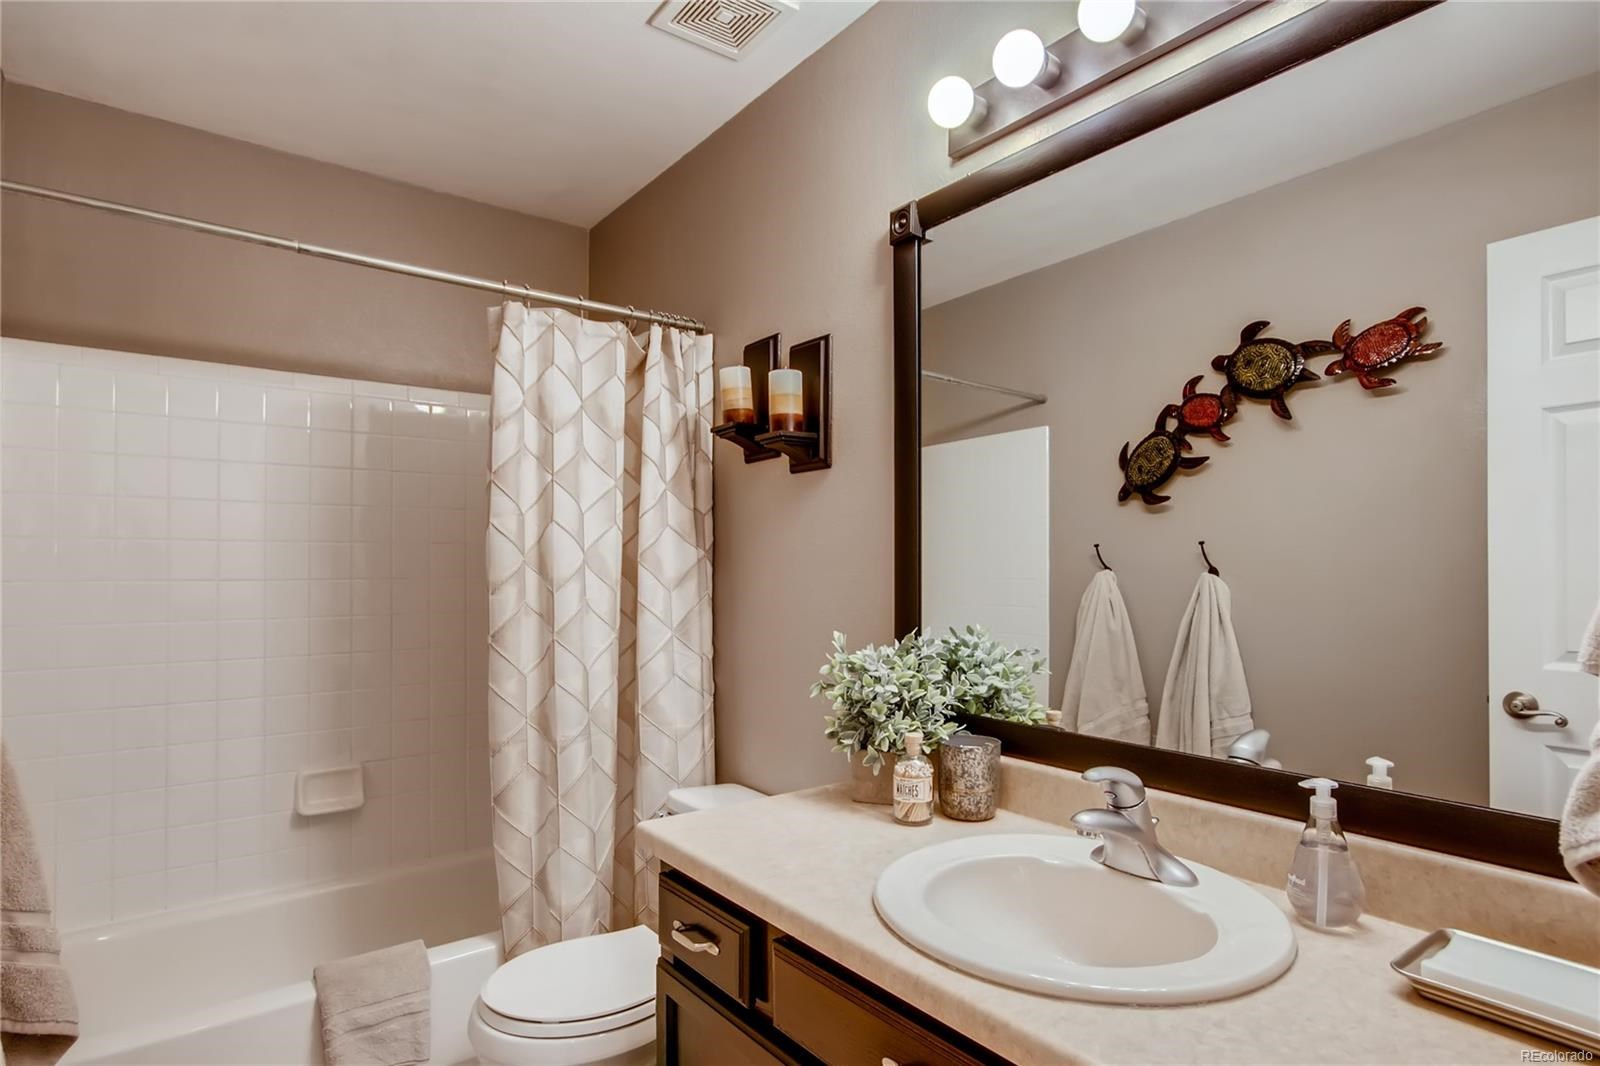 MLS# 8484969 - 26 - 2152 Gold Dust Trail, Highlands Ranch, CO 80129